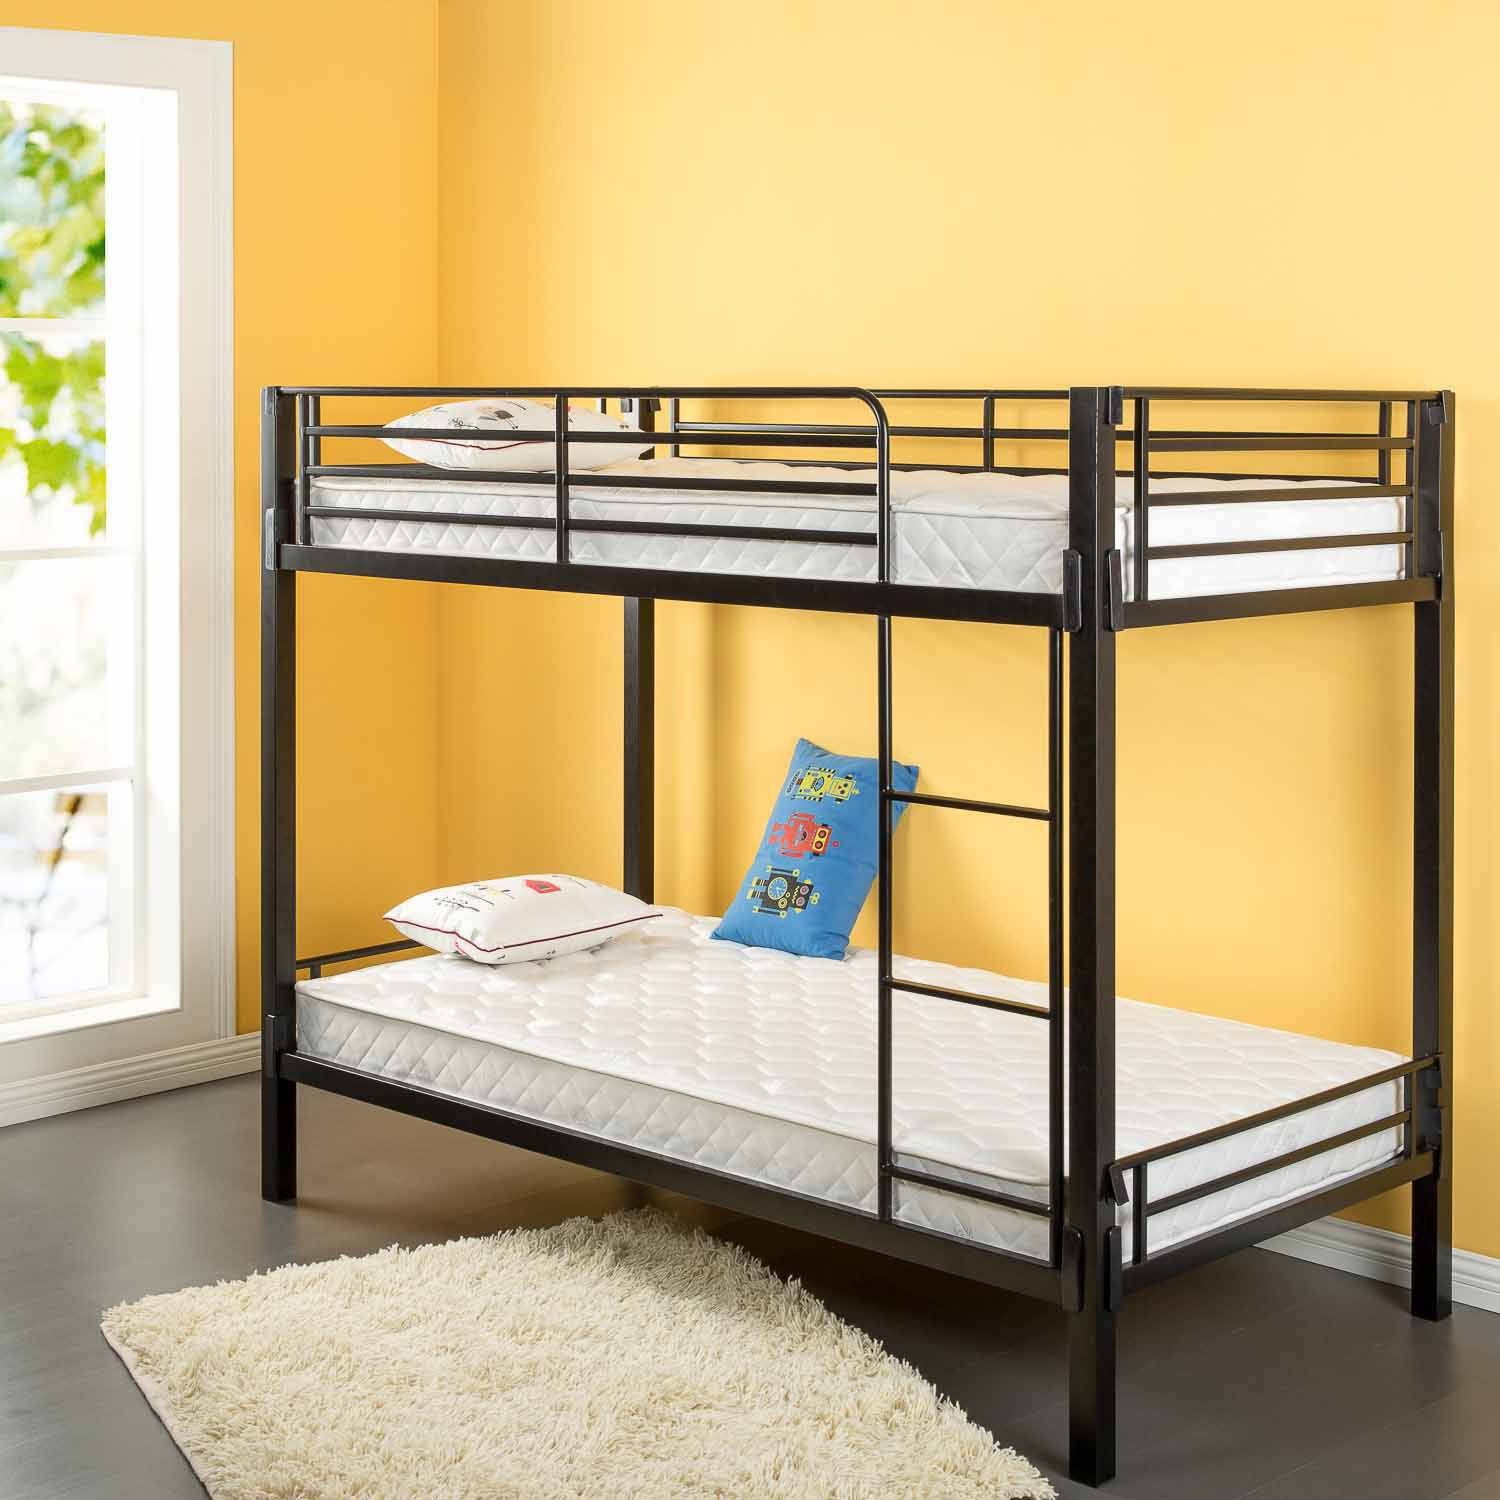 30 6 Bunk Bed Mattress Interior Design Bedroom Ideas On A Budget Check More At